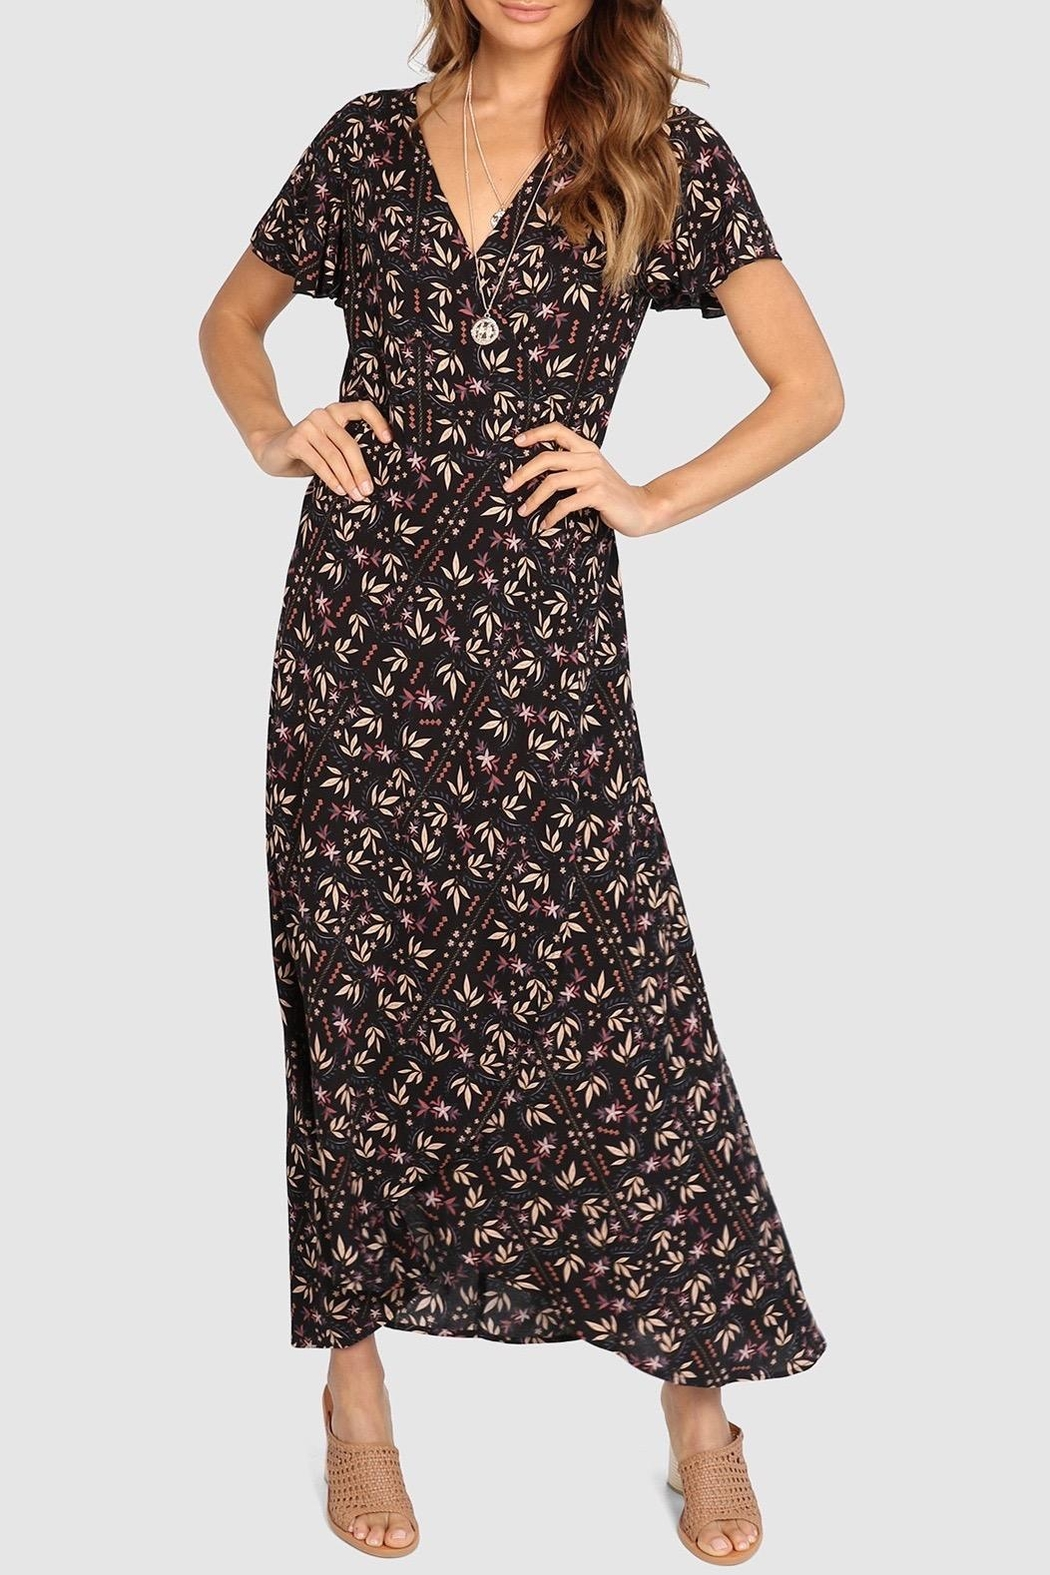 Lost in Lunar Eliza Wrap Dress - Main Image